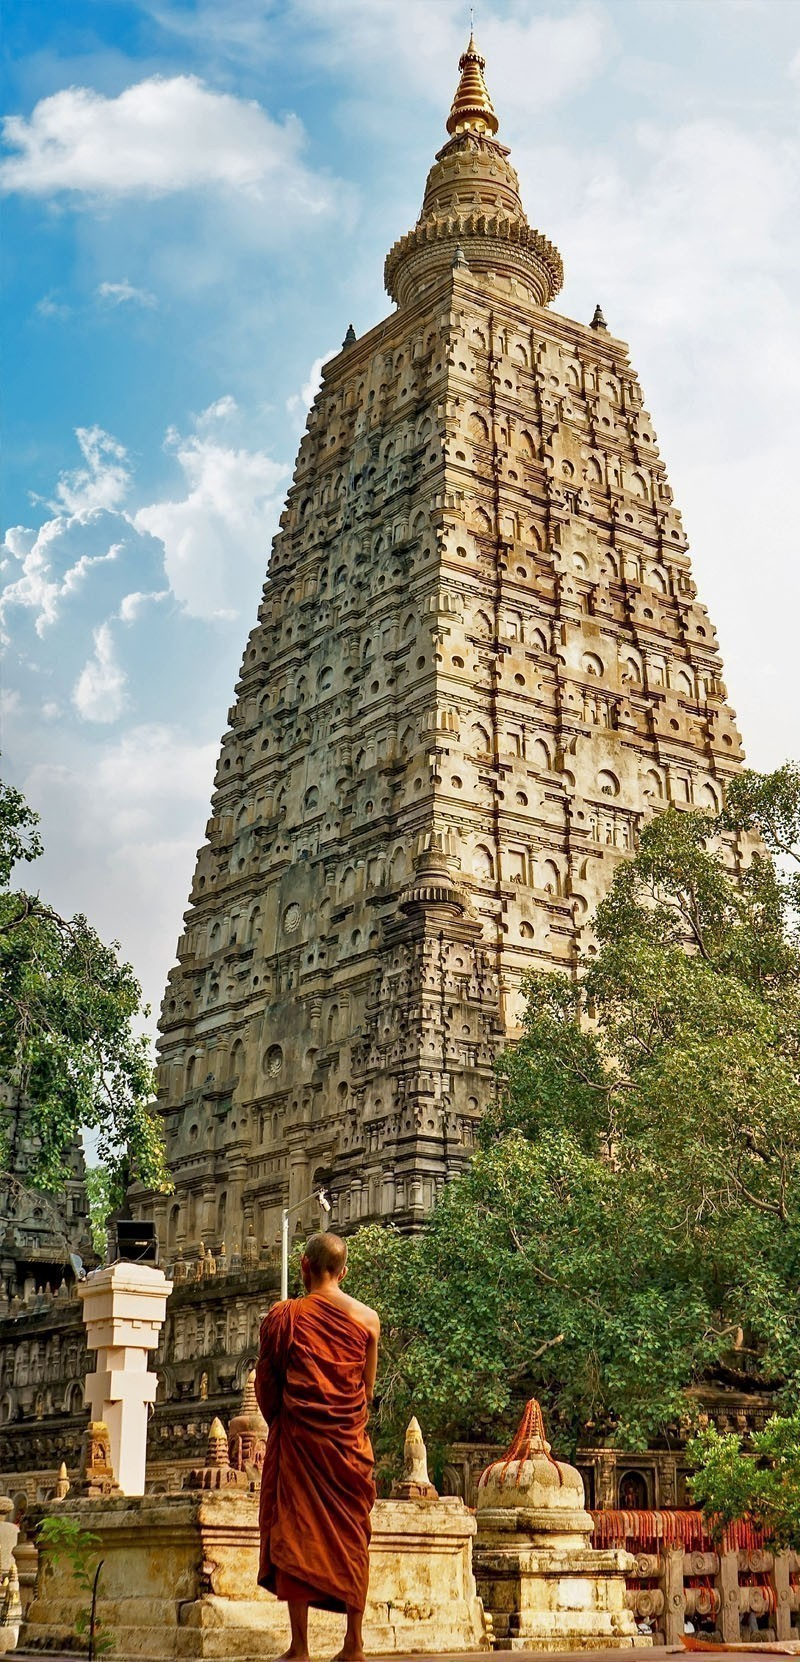 Bodhgaya is Public Buddhism landmark in India, The place Buddha attained enlightenment | Your Complete Travel Guide to India